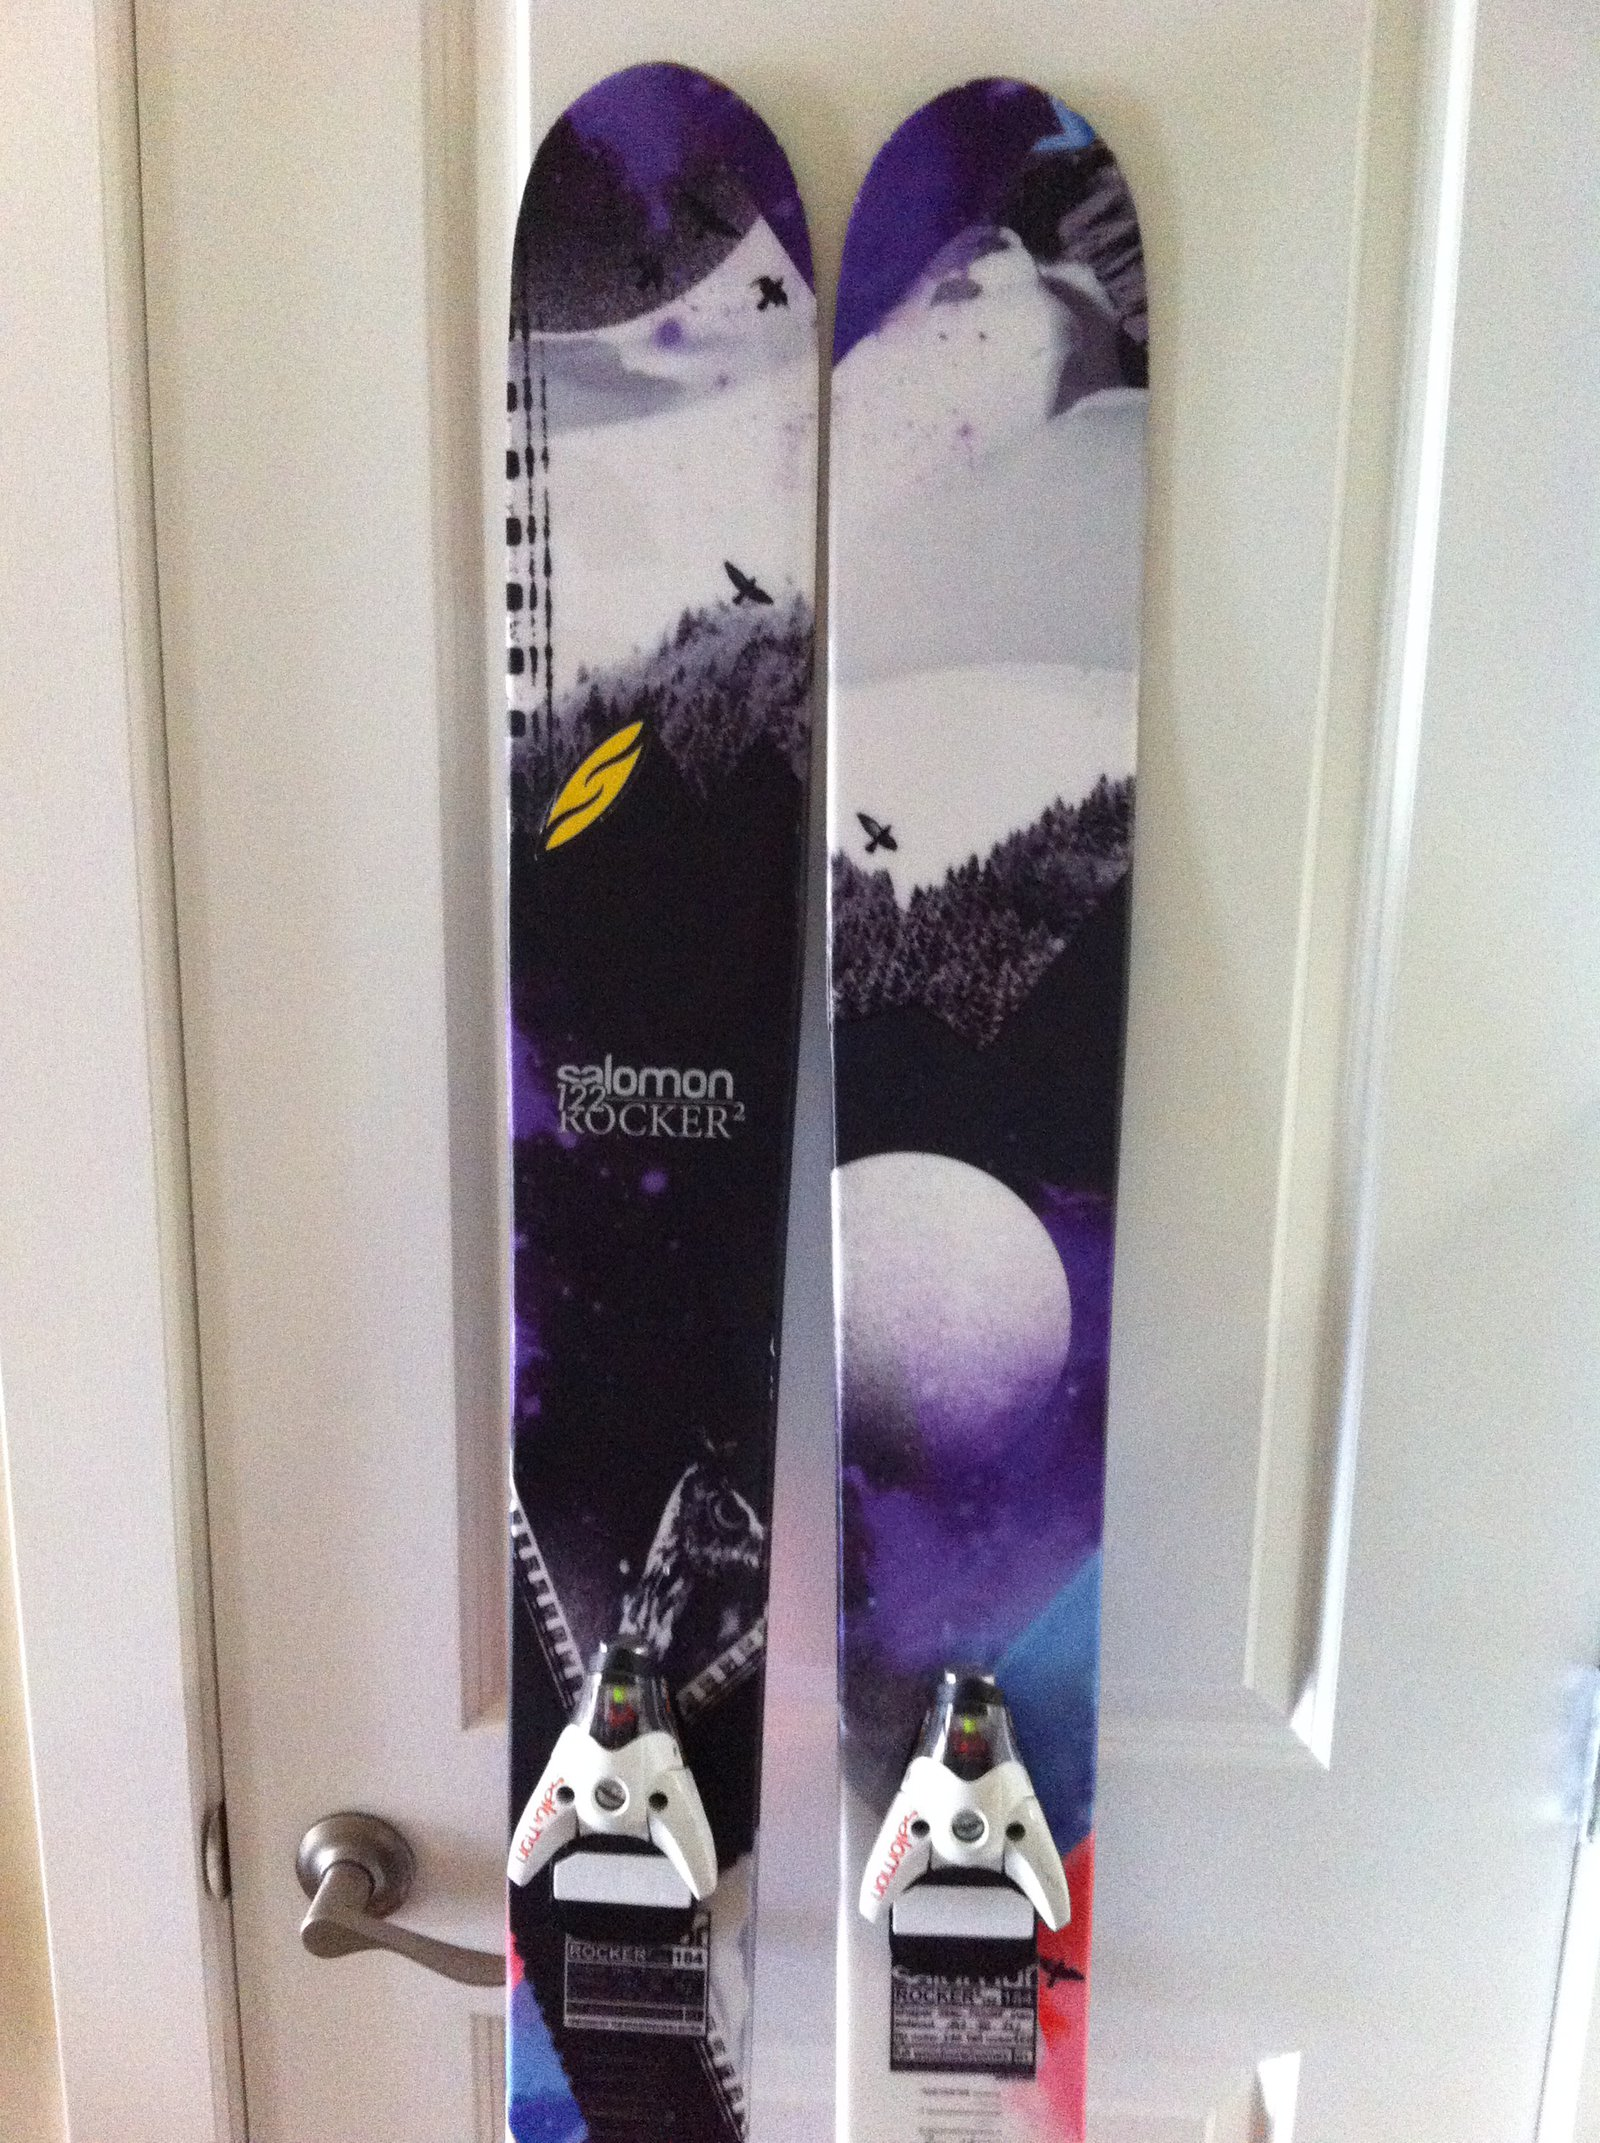 Salomon Rocker 2 122 with STH 16 Bindings